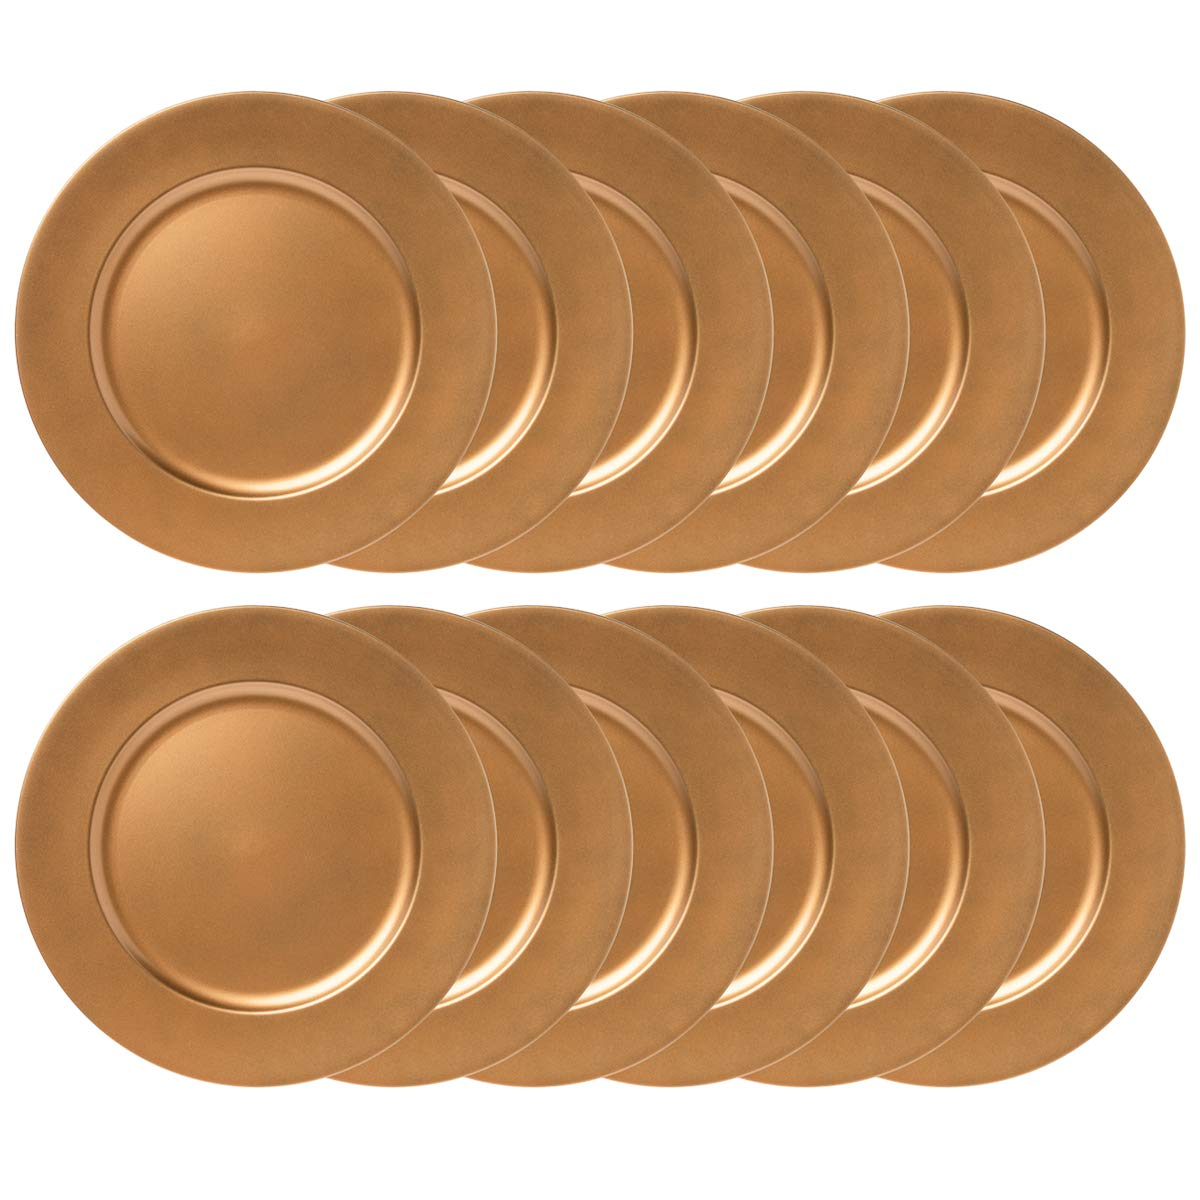 12 Pack 13 Round Charger Plate Set Dining Table Home Decor Plates Lincoln International Products